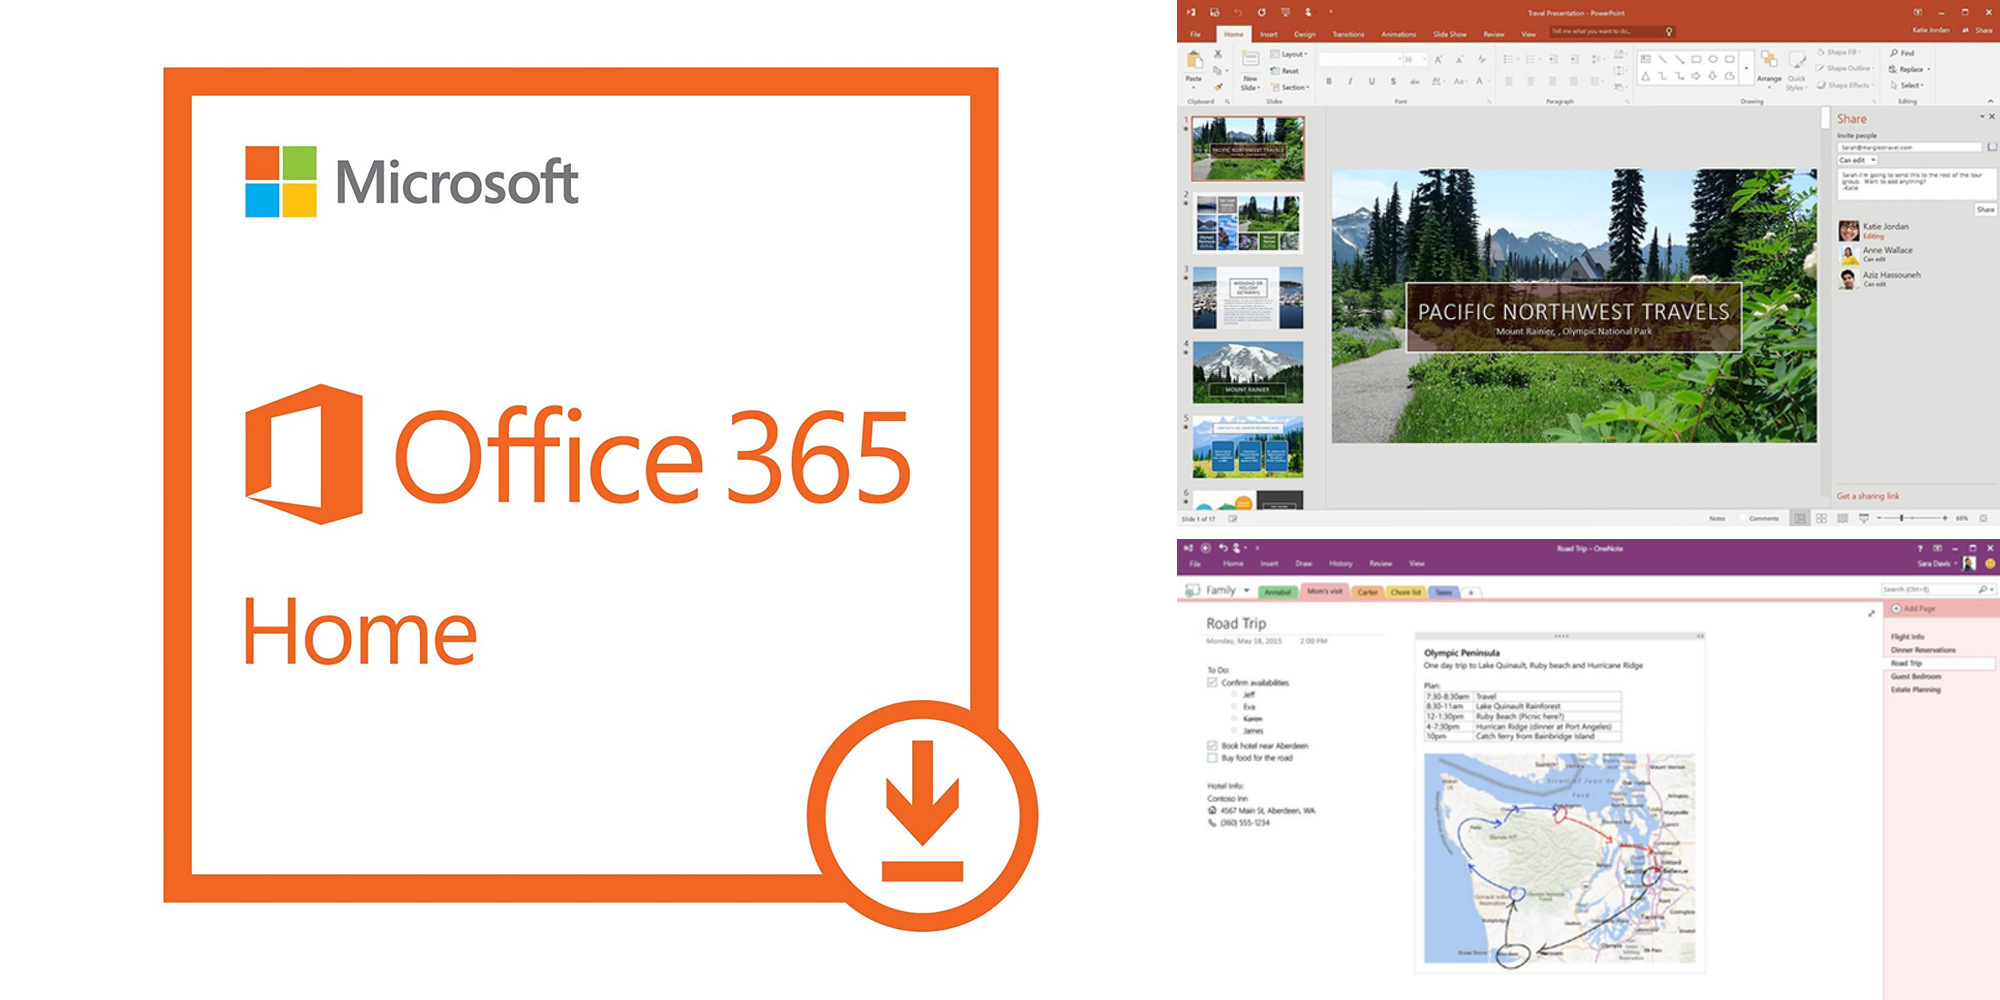 Microsoft office 2018 deals for students - Chicago fire ticket